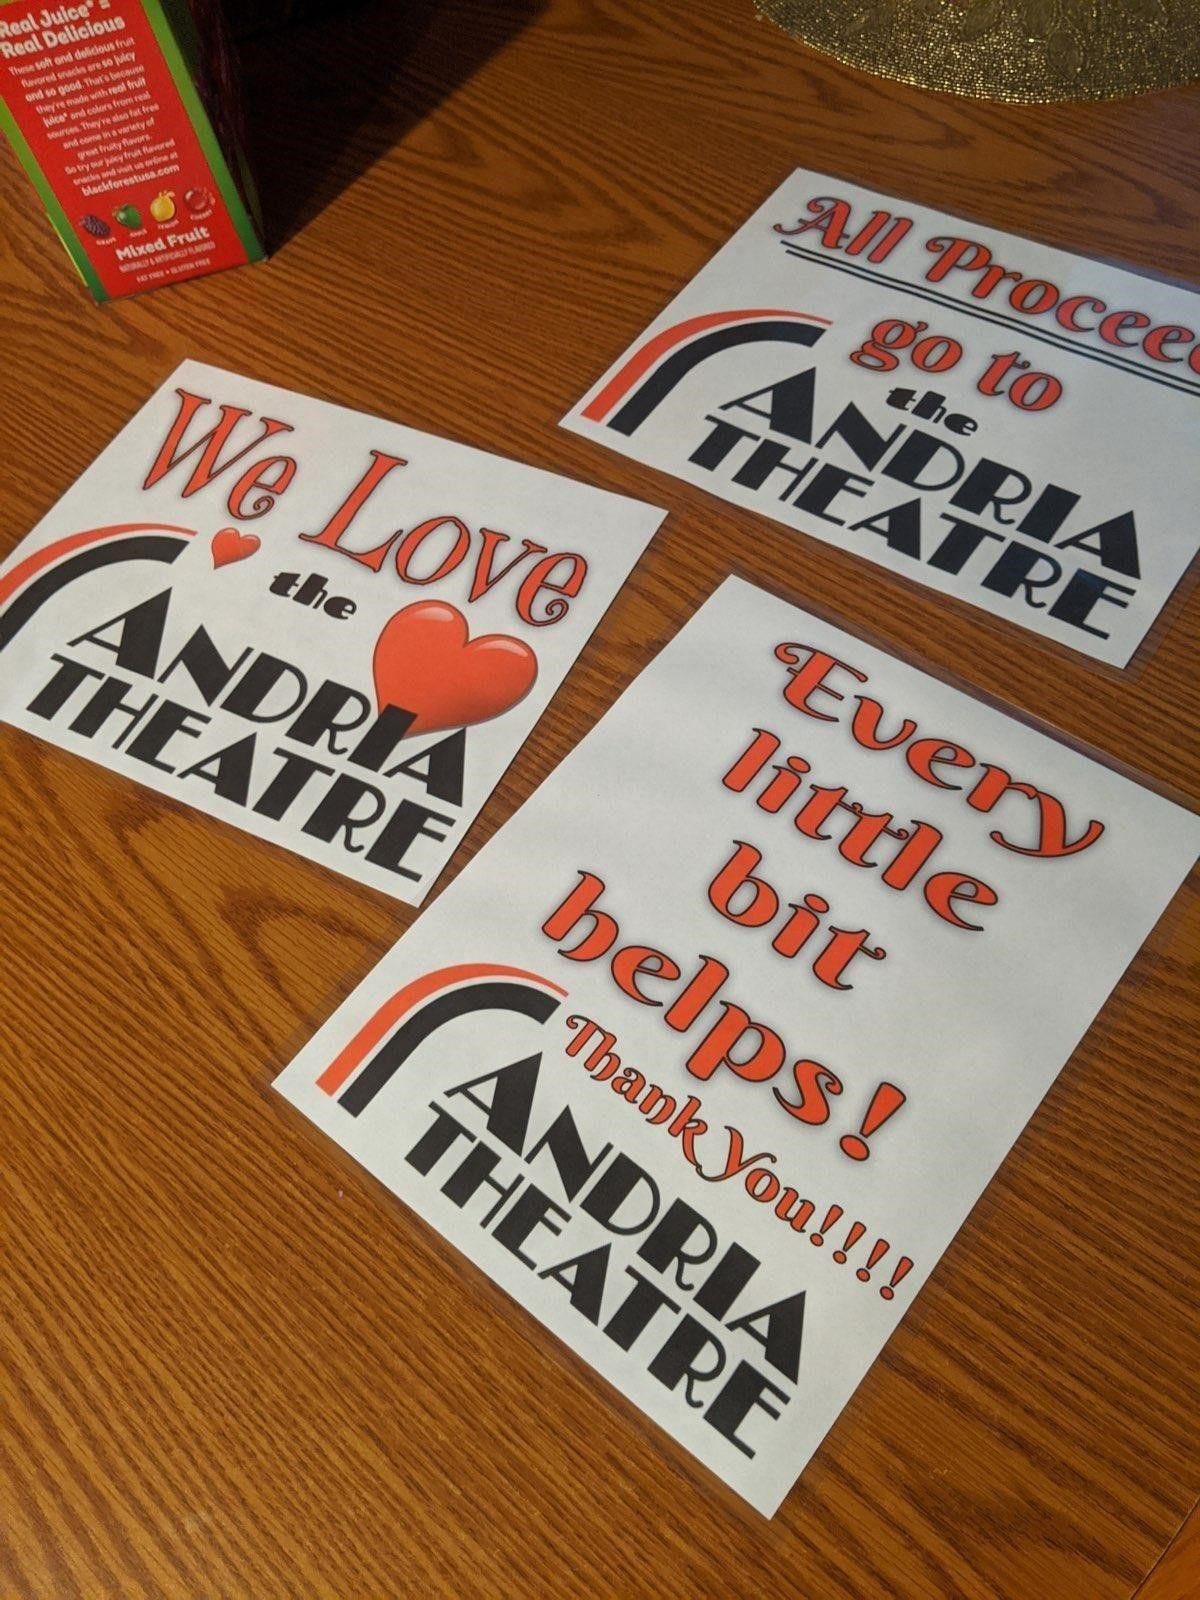 Signs show their support for theatre